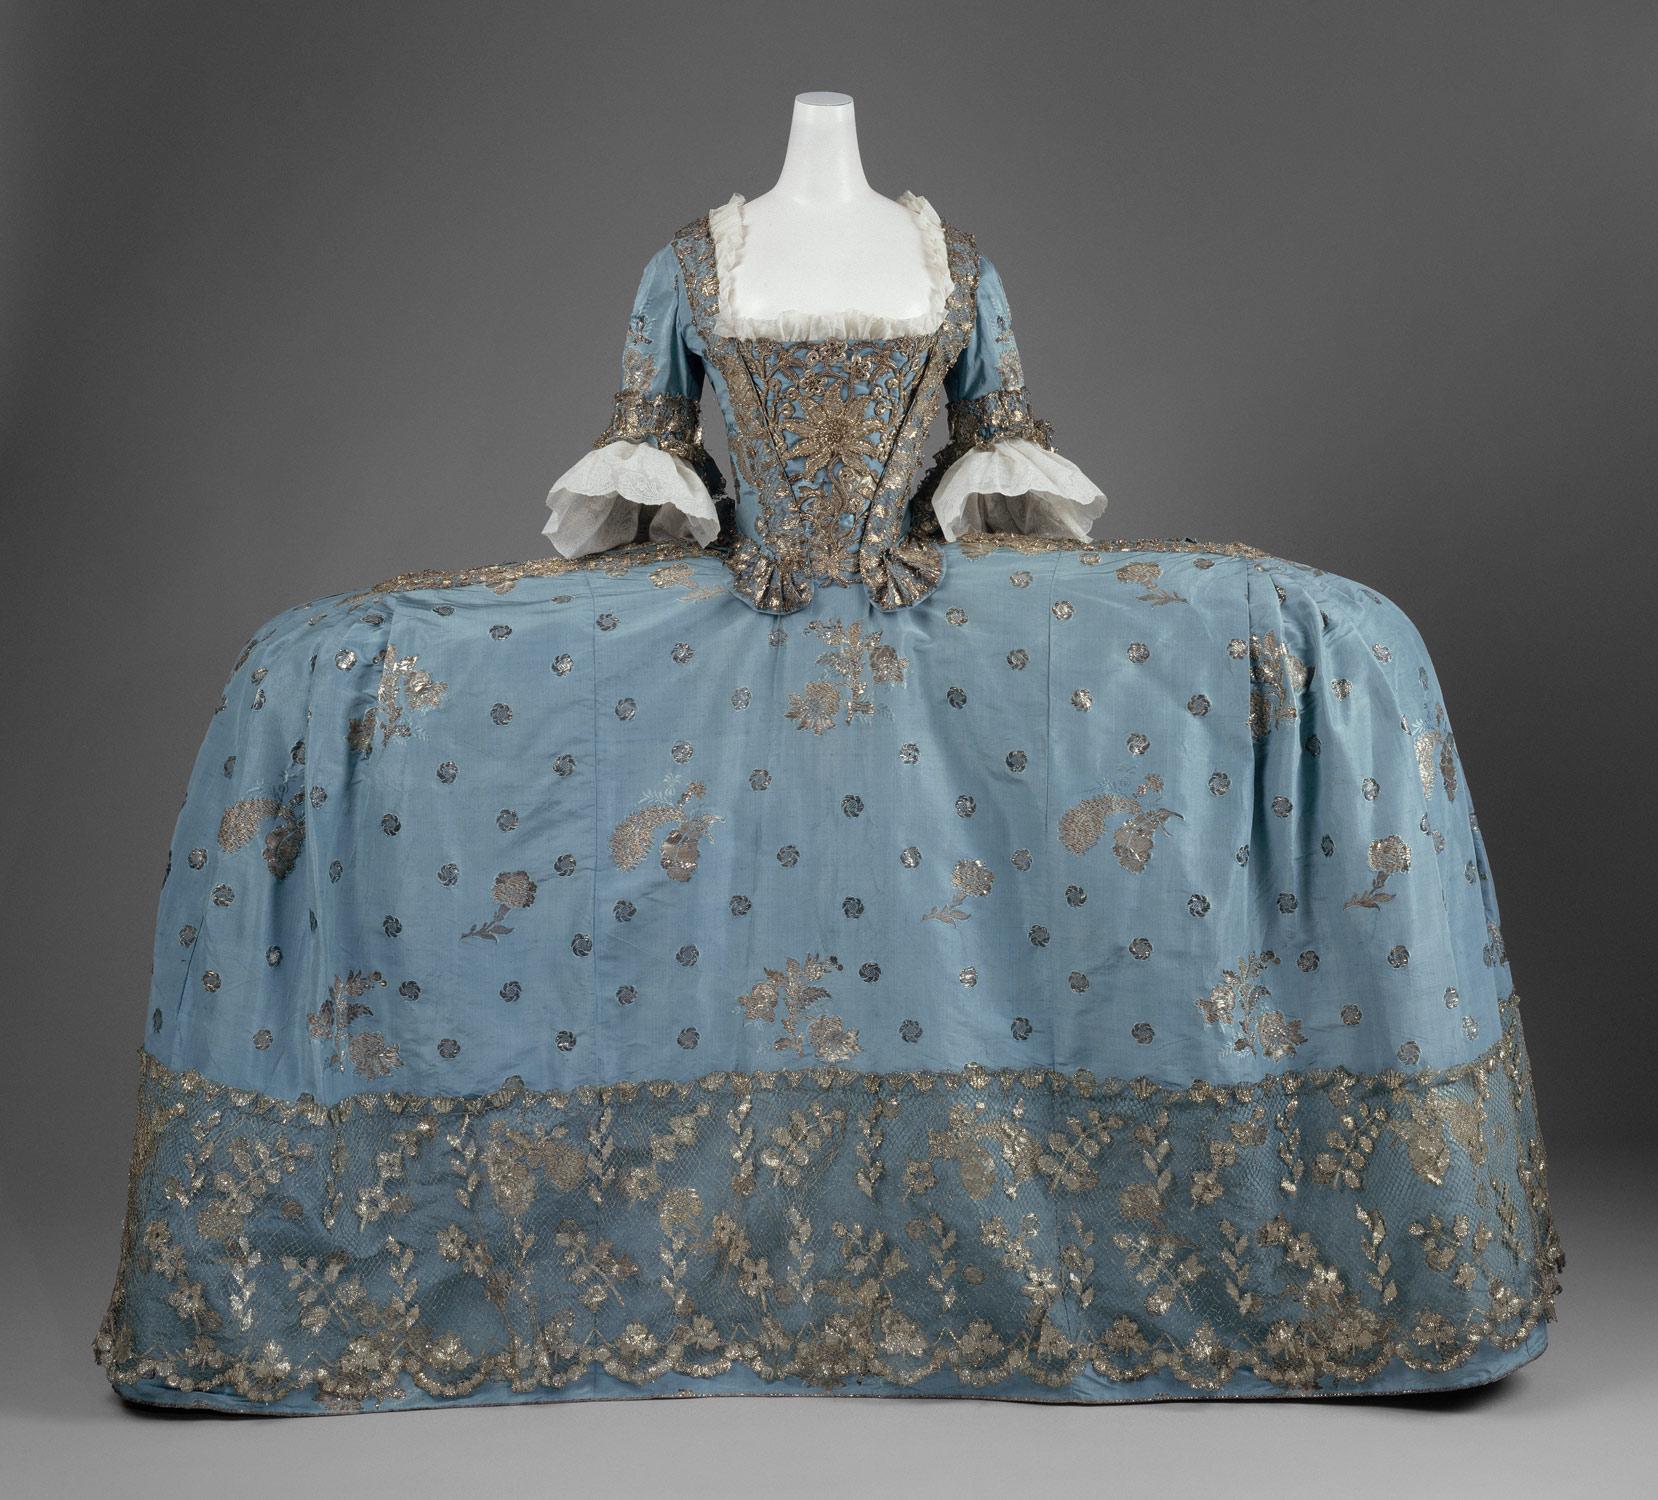 eighteenth century european dress essay heilbrunn timeline of court dress